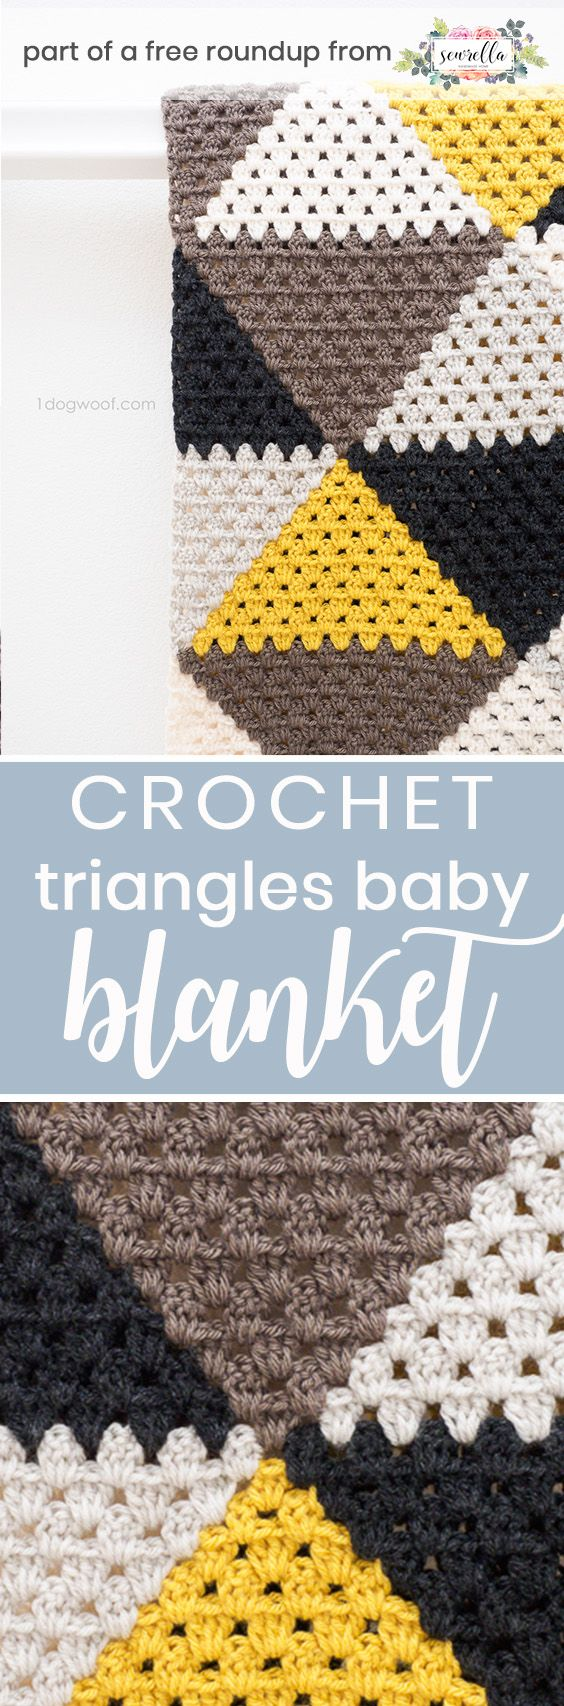 Get the free crochet pattern for this love triangles baby blanket from One Dog Woof featured in my gender neutral baby blanket FREE pattern roundup!